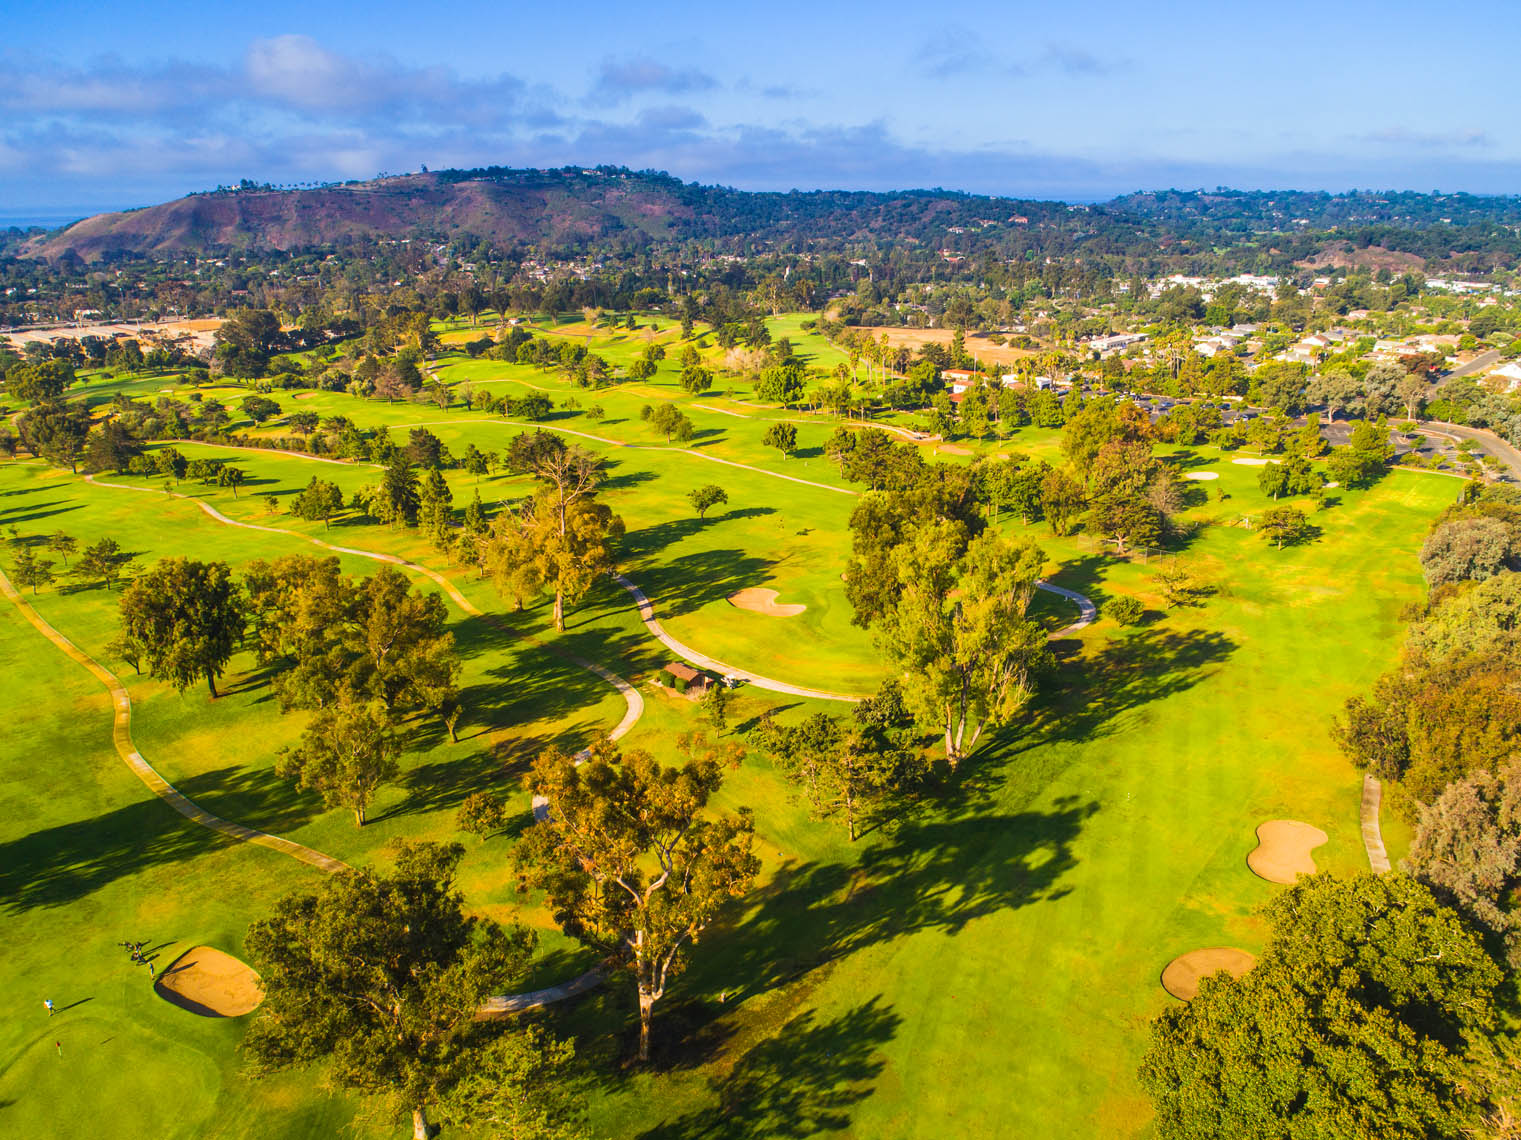 Aerial_Muni_Golf_Course_2